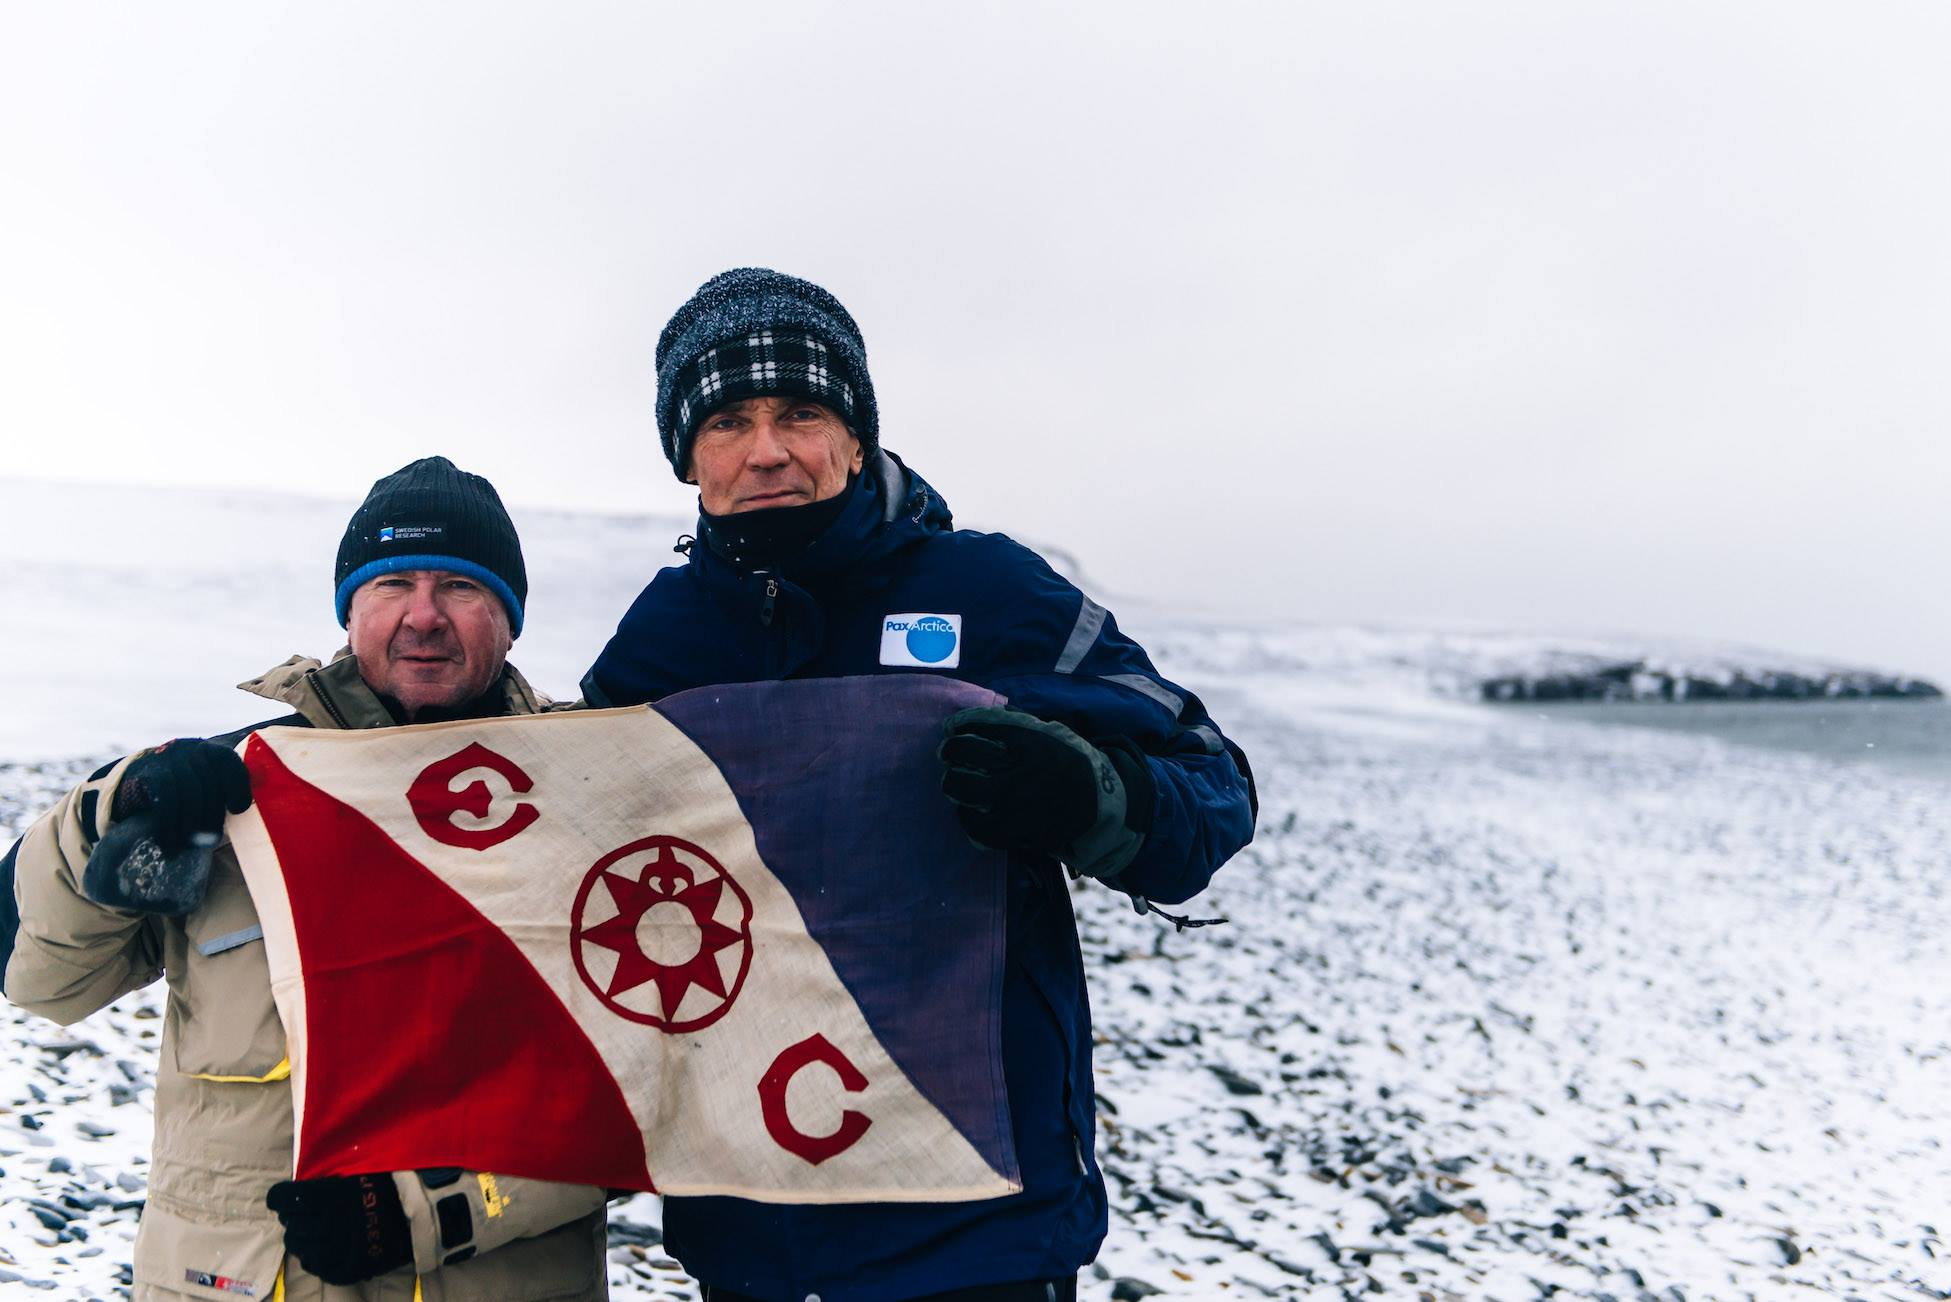 Luc (right) with Prof. Alexei Tikhonov after a nature samples/arctifacts collecting session on Bennett Island. The Explorers Club flag!